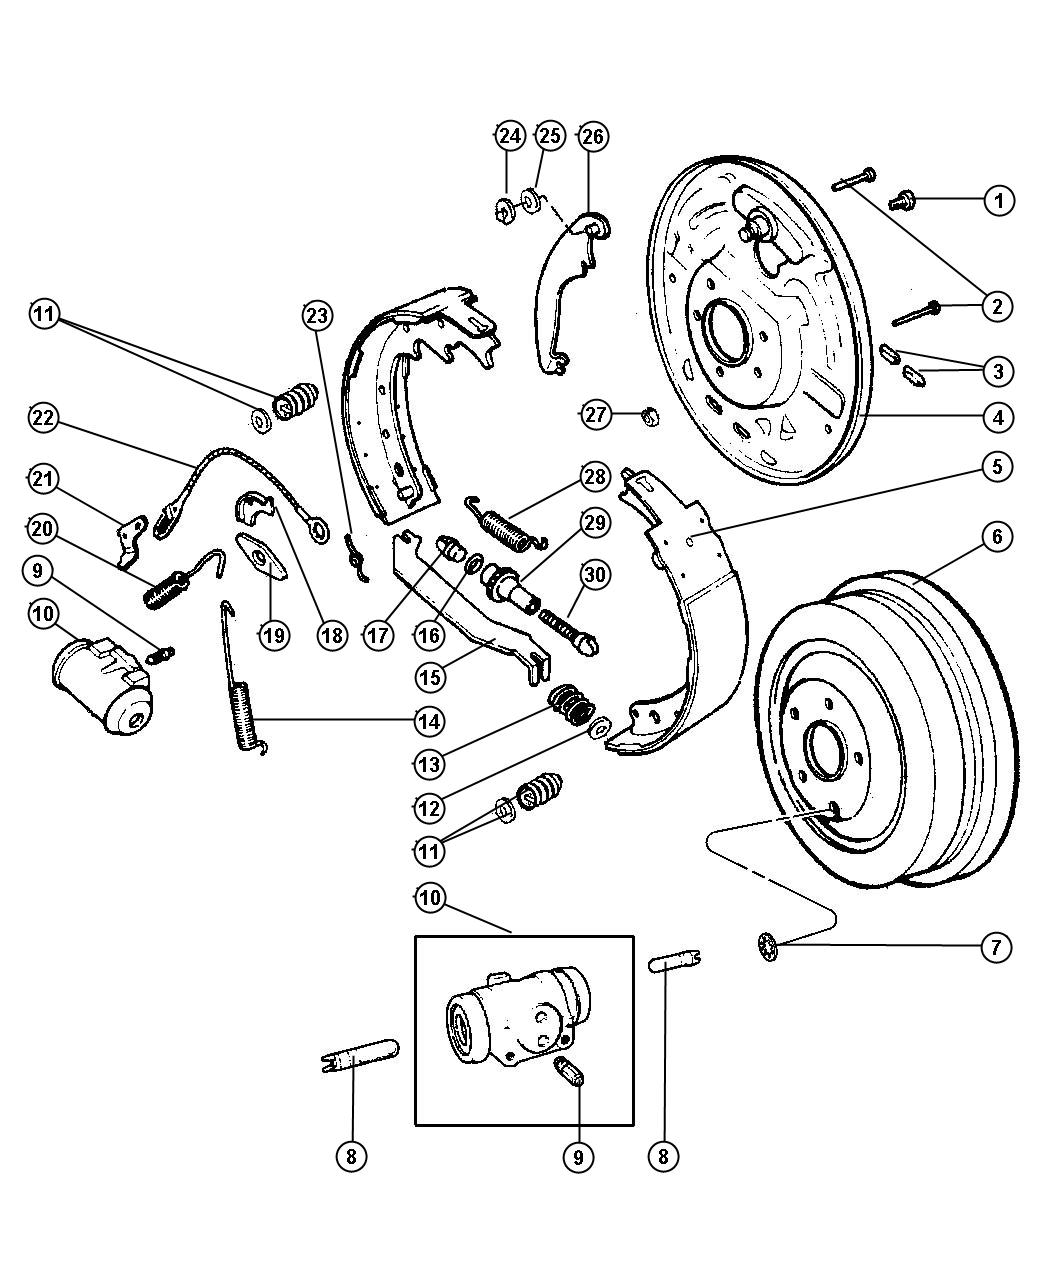 Jeep Liberty Brake Replacement System Diagram